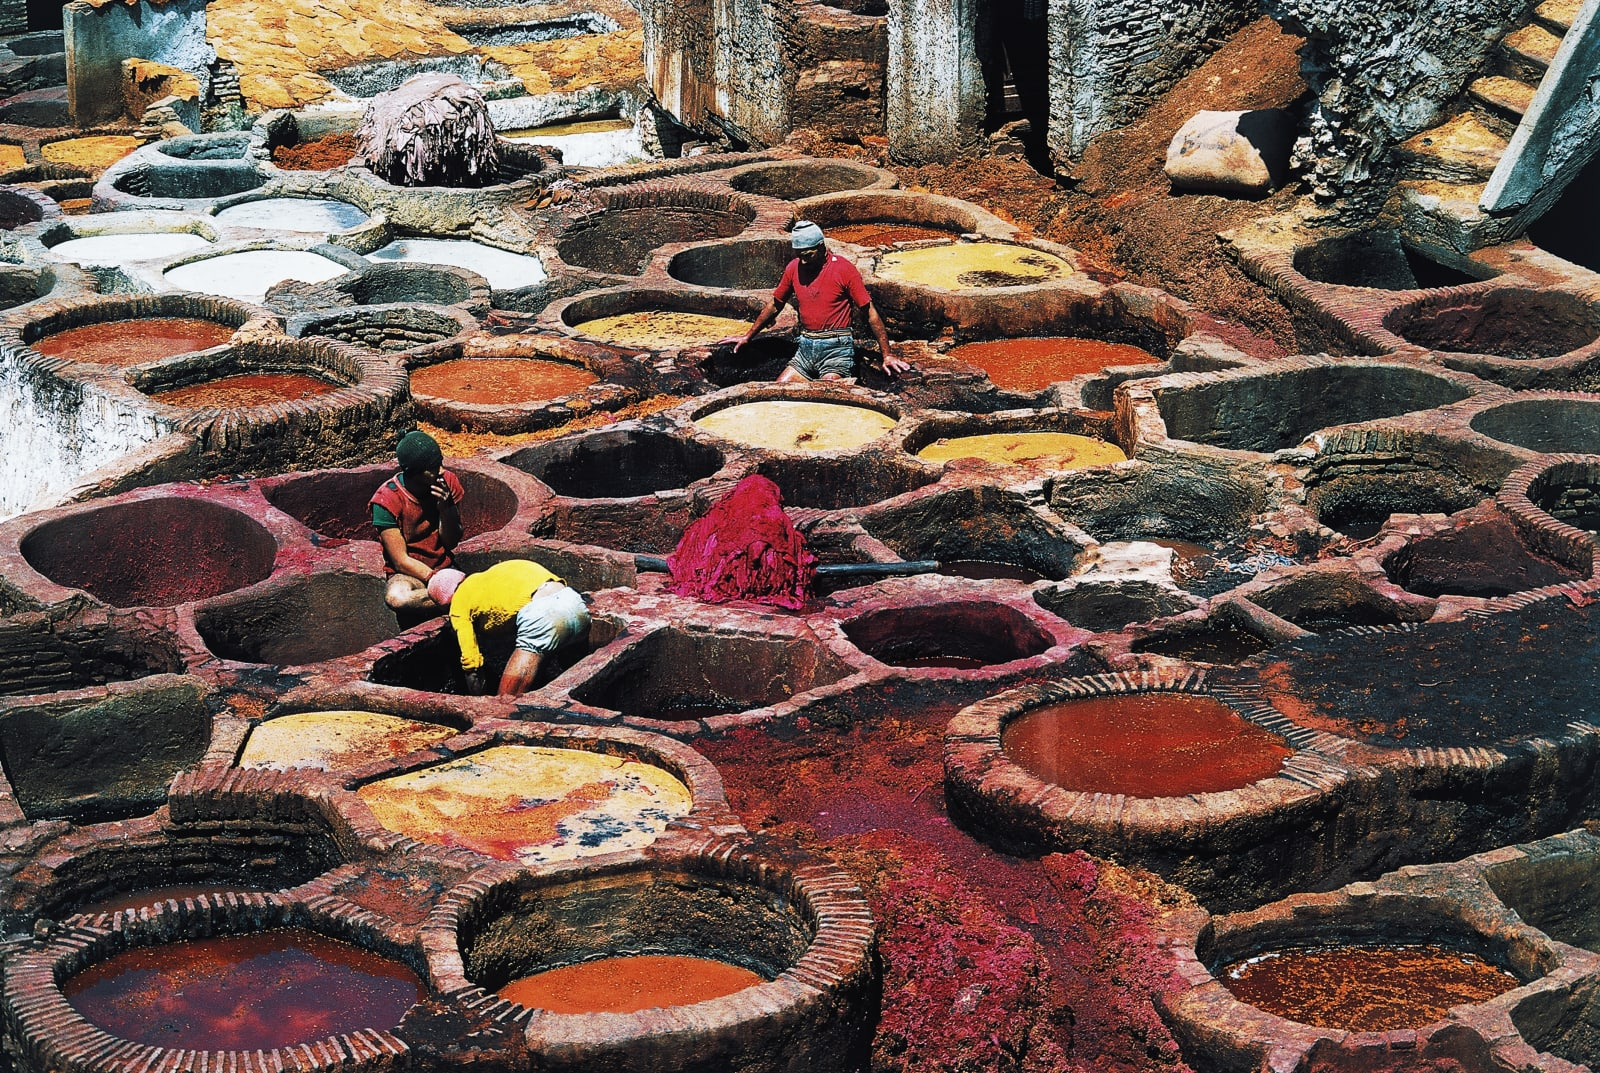 Men working at leather tanning, Fes